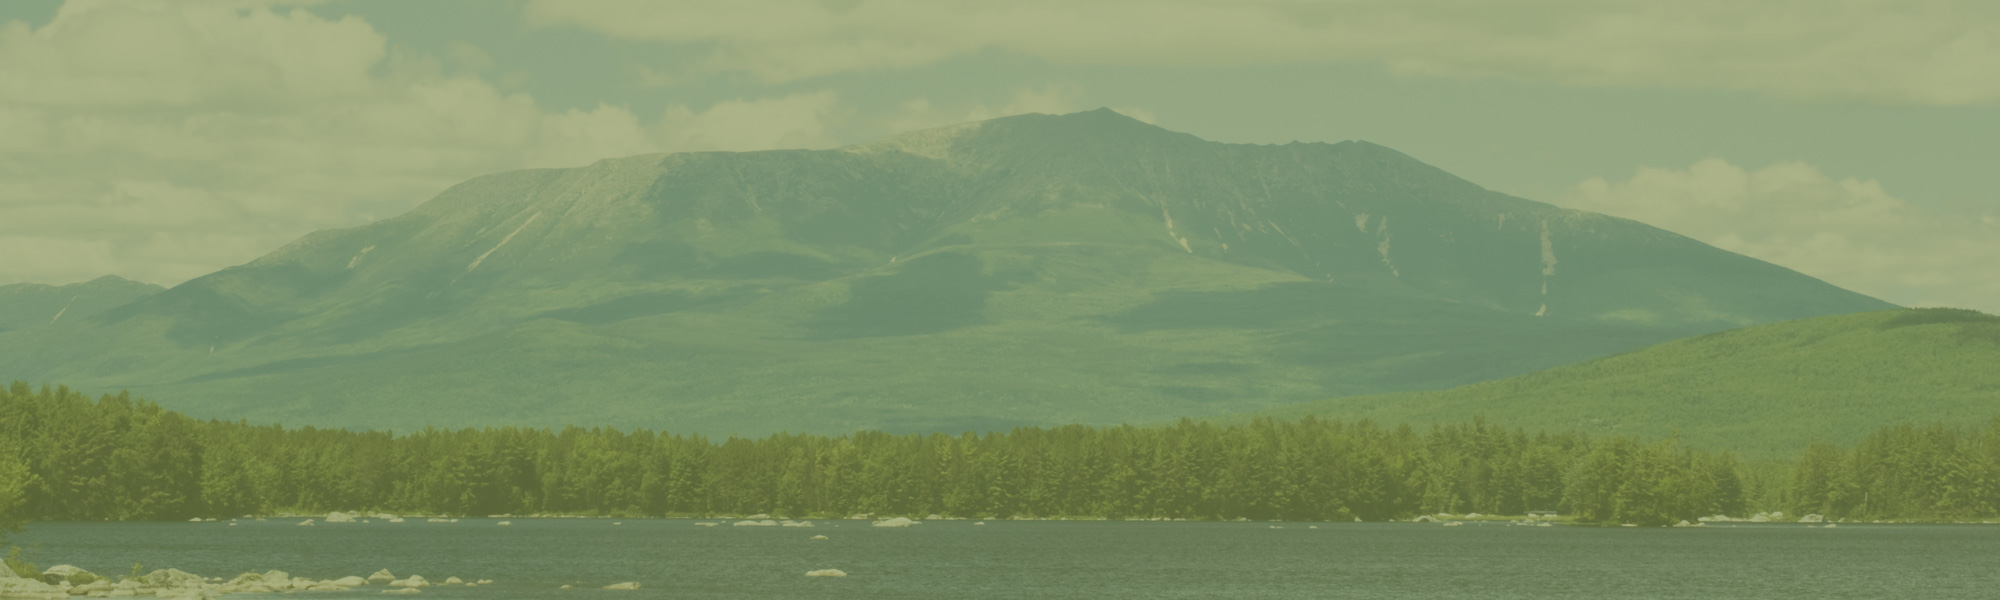 maine-highlands-header-overlay